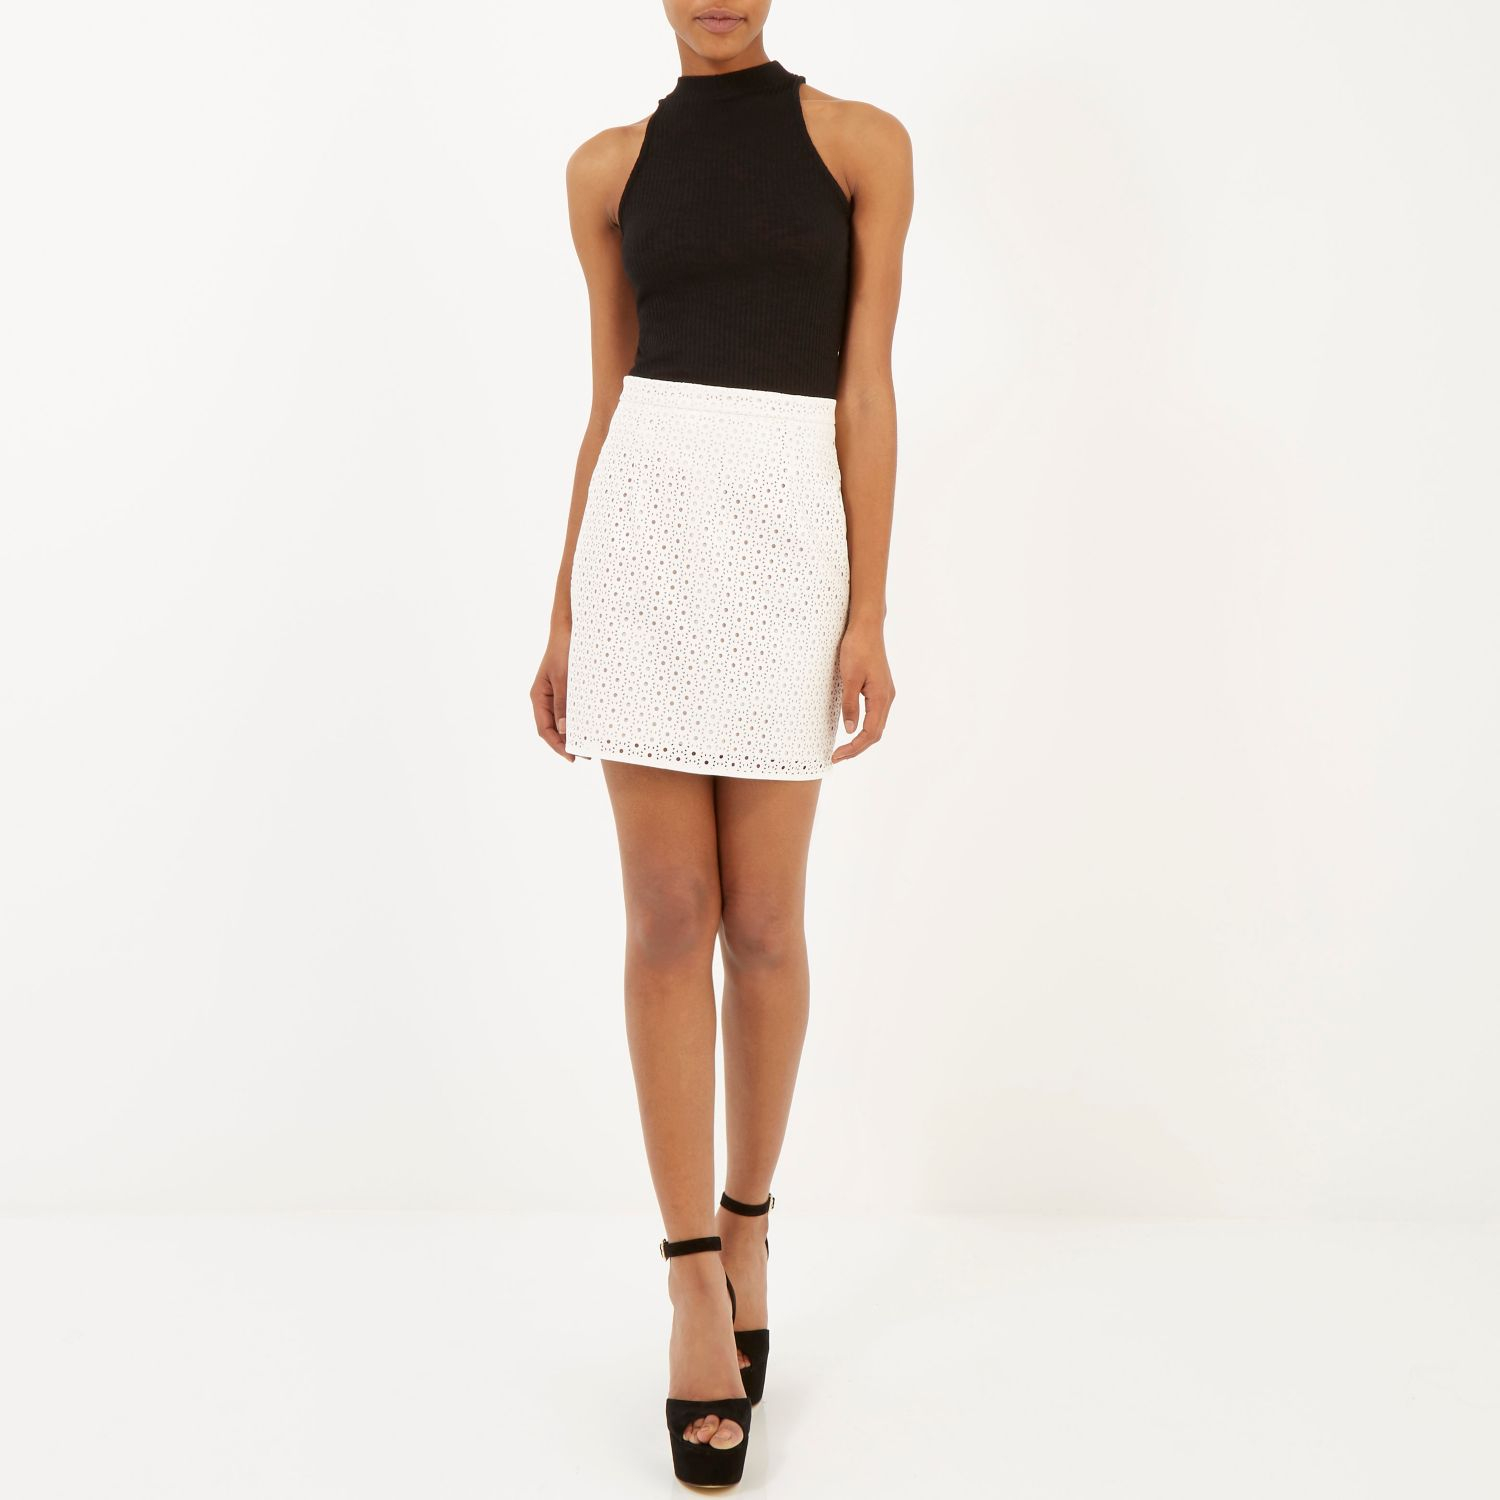 River island Cream Punched Leather-look Mini Skirt in Natural | Lyst